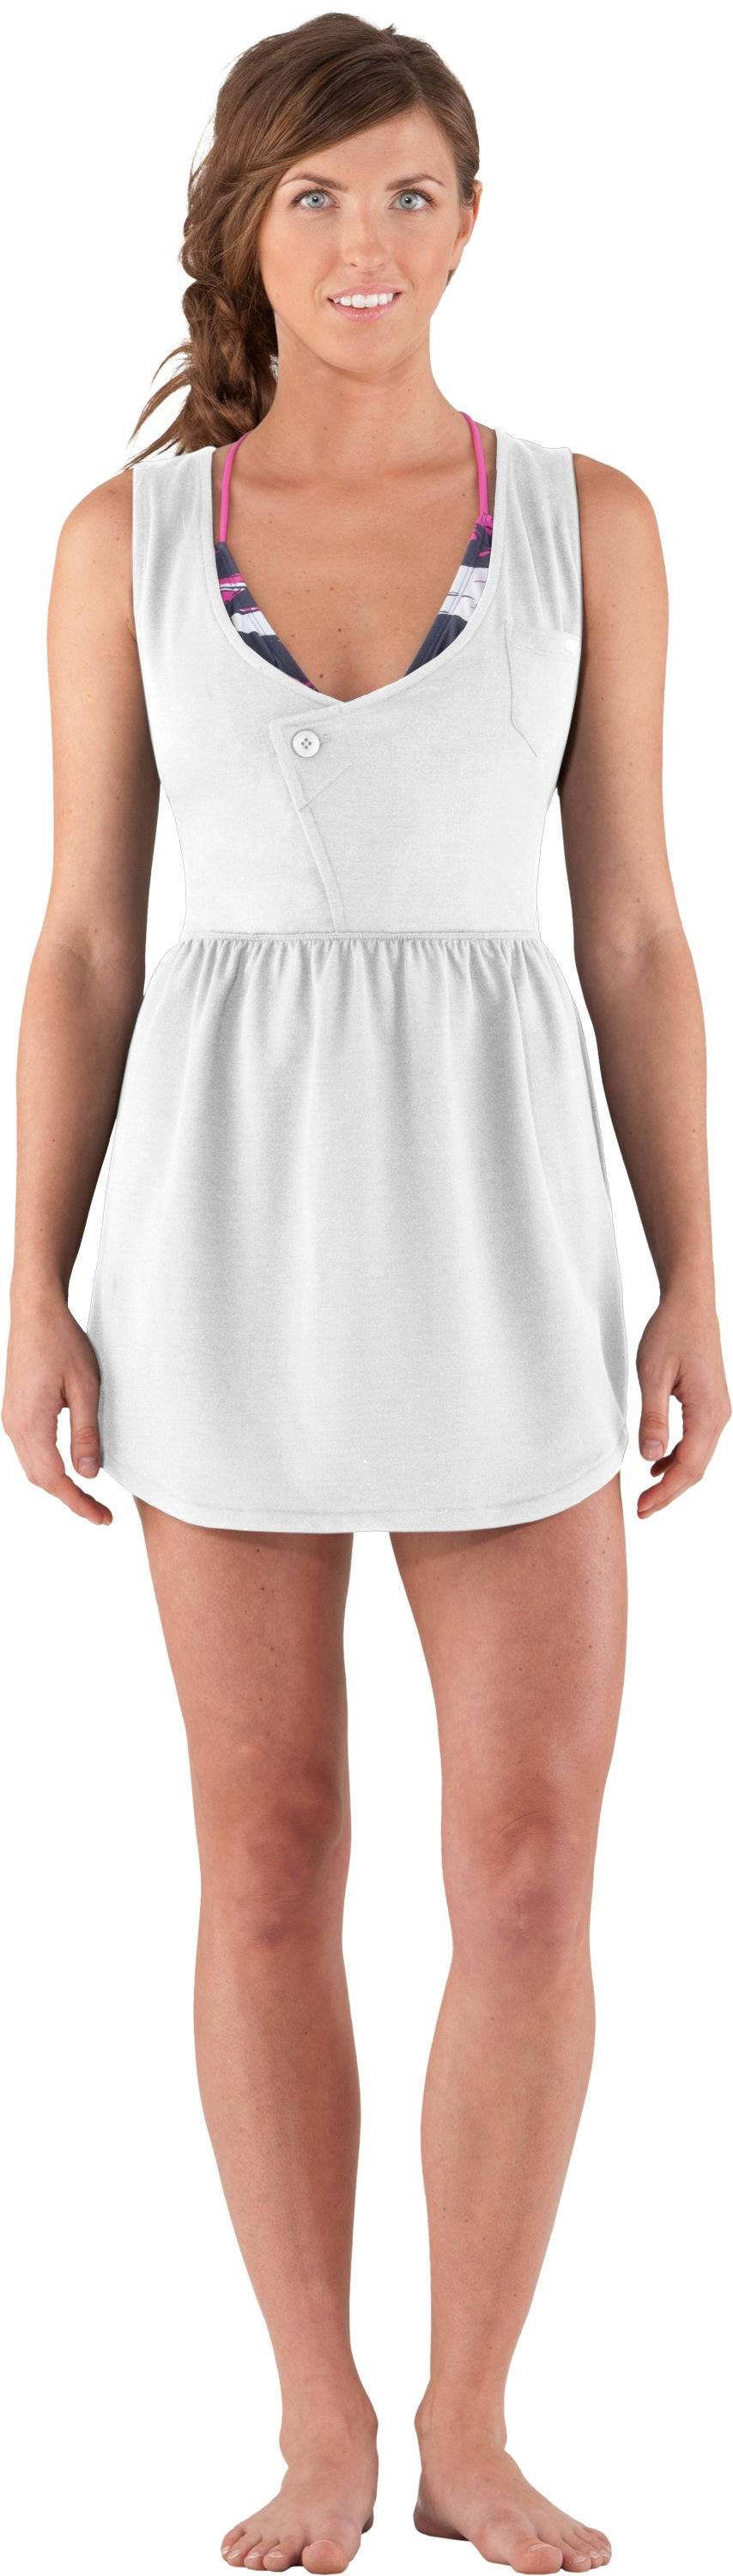 Women's Ridgely Cover-Up, White, zoomed image